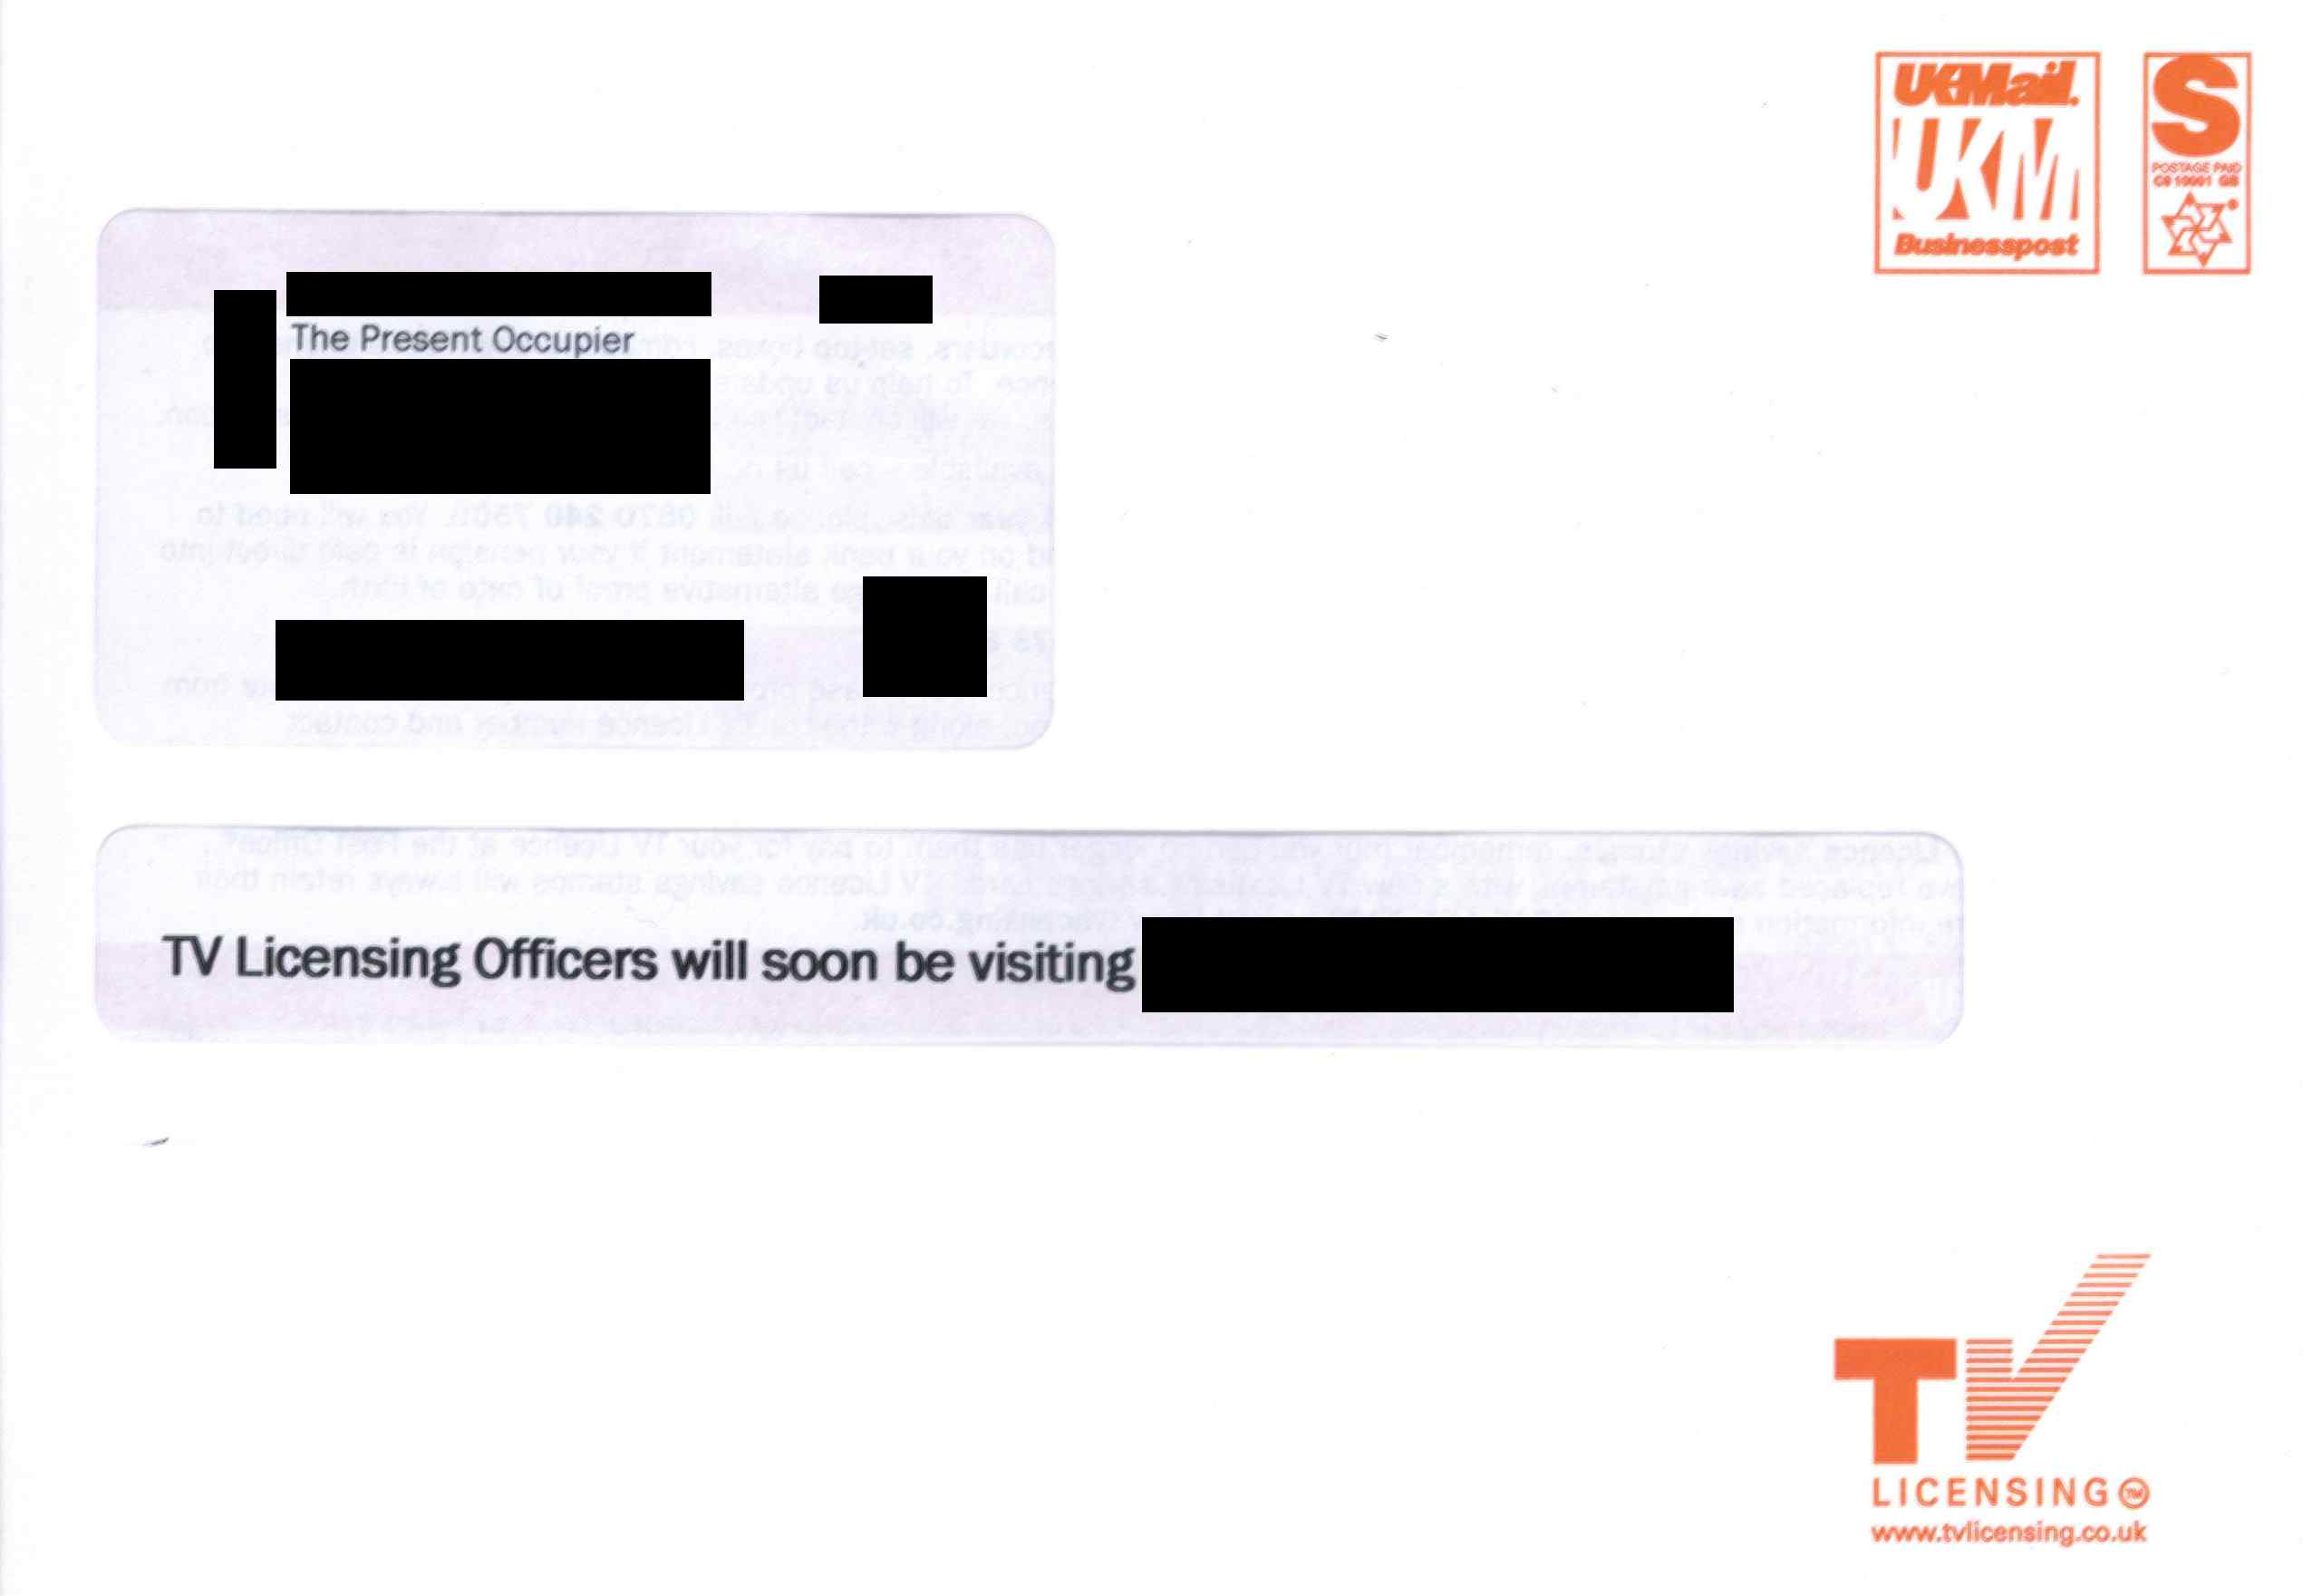 TVL window envelope